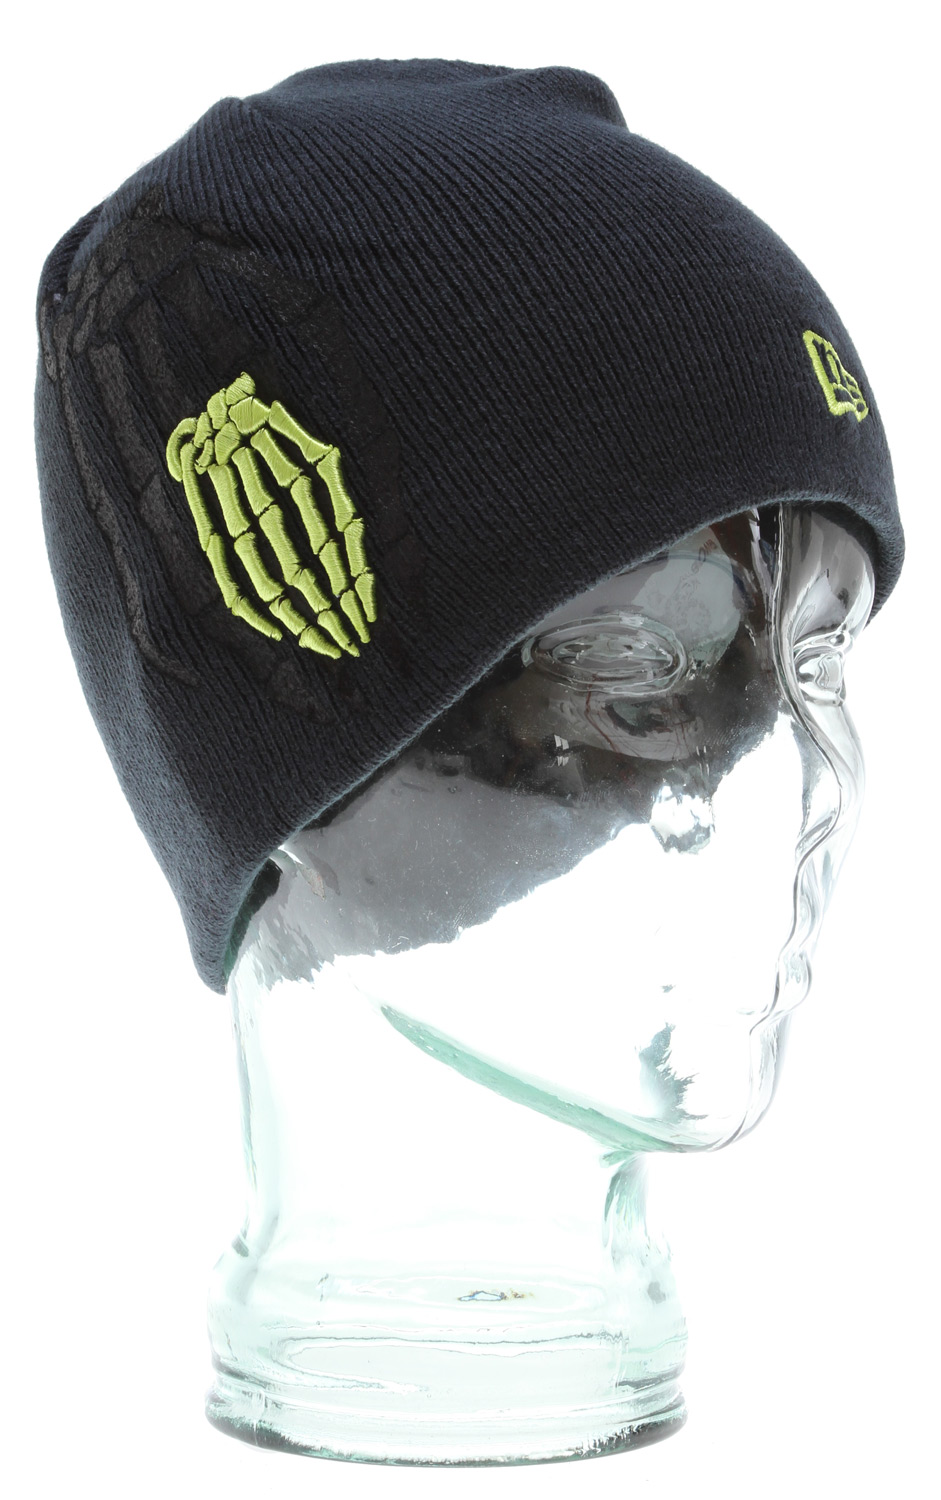 Key Features of the Grenade New Era Skull Bomb Shadow Beanie : 100% Acrylic Embroidered & screen print graphics - $17.95